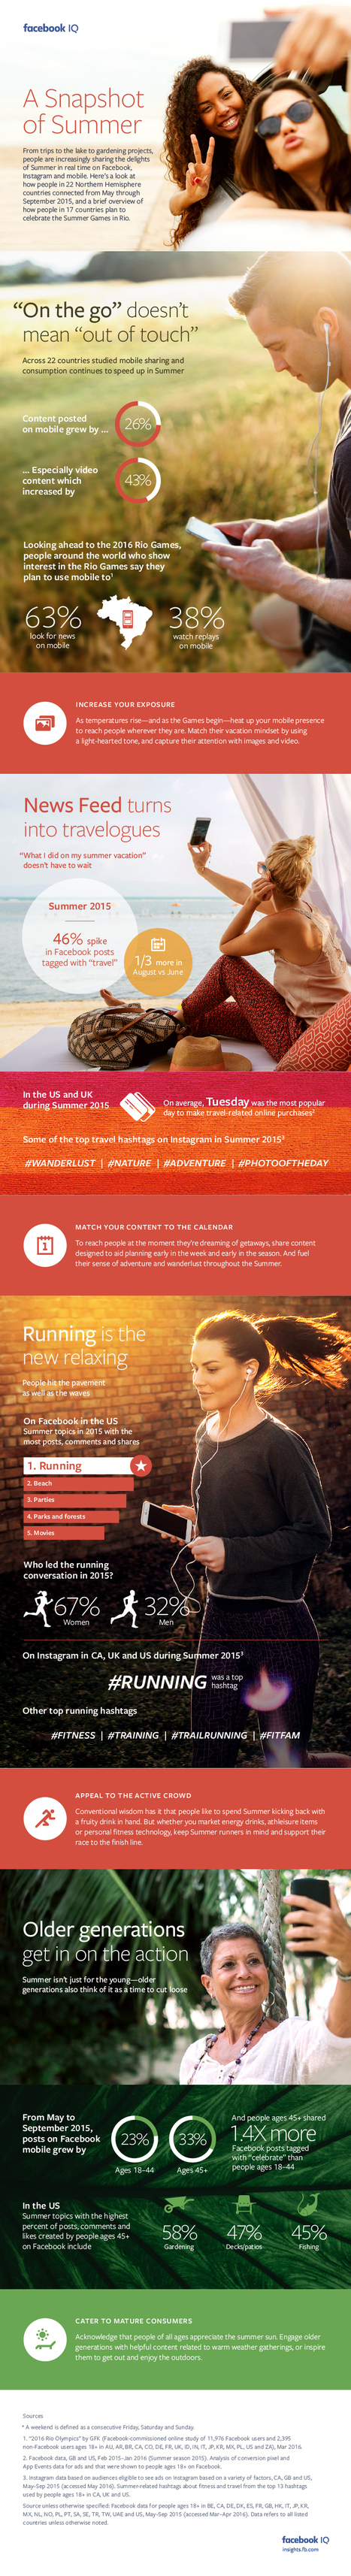 Facebook Releases Data on Usage Trends Over Summer #Infographic   MarketingHits   Scoop.it